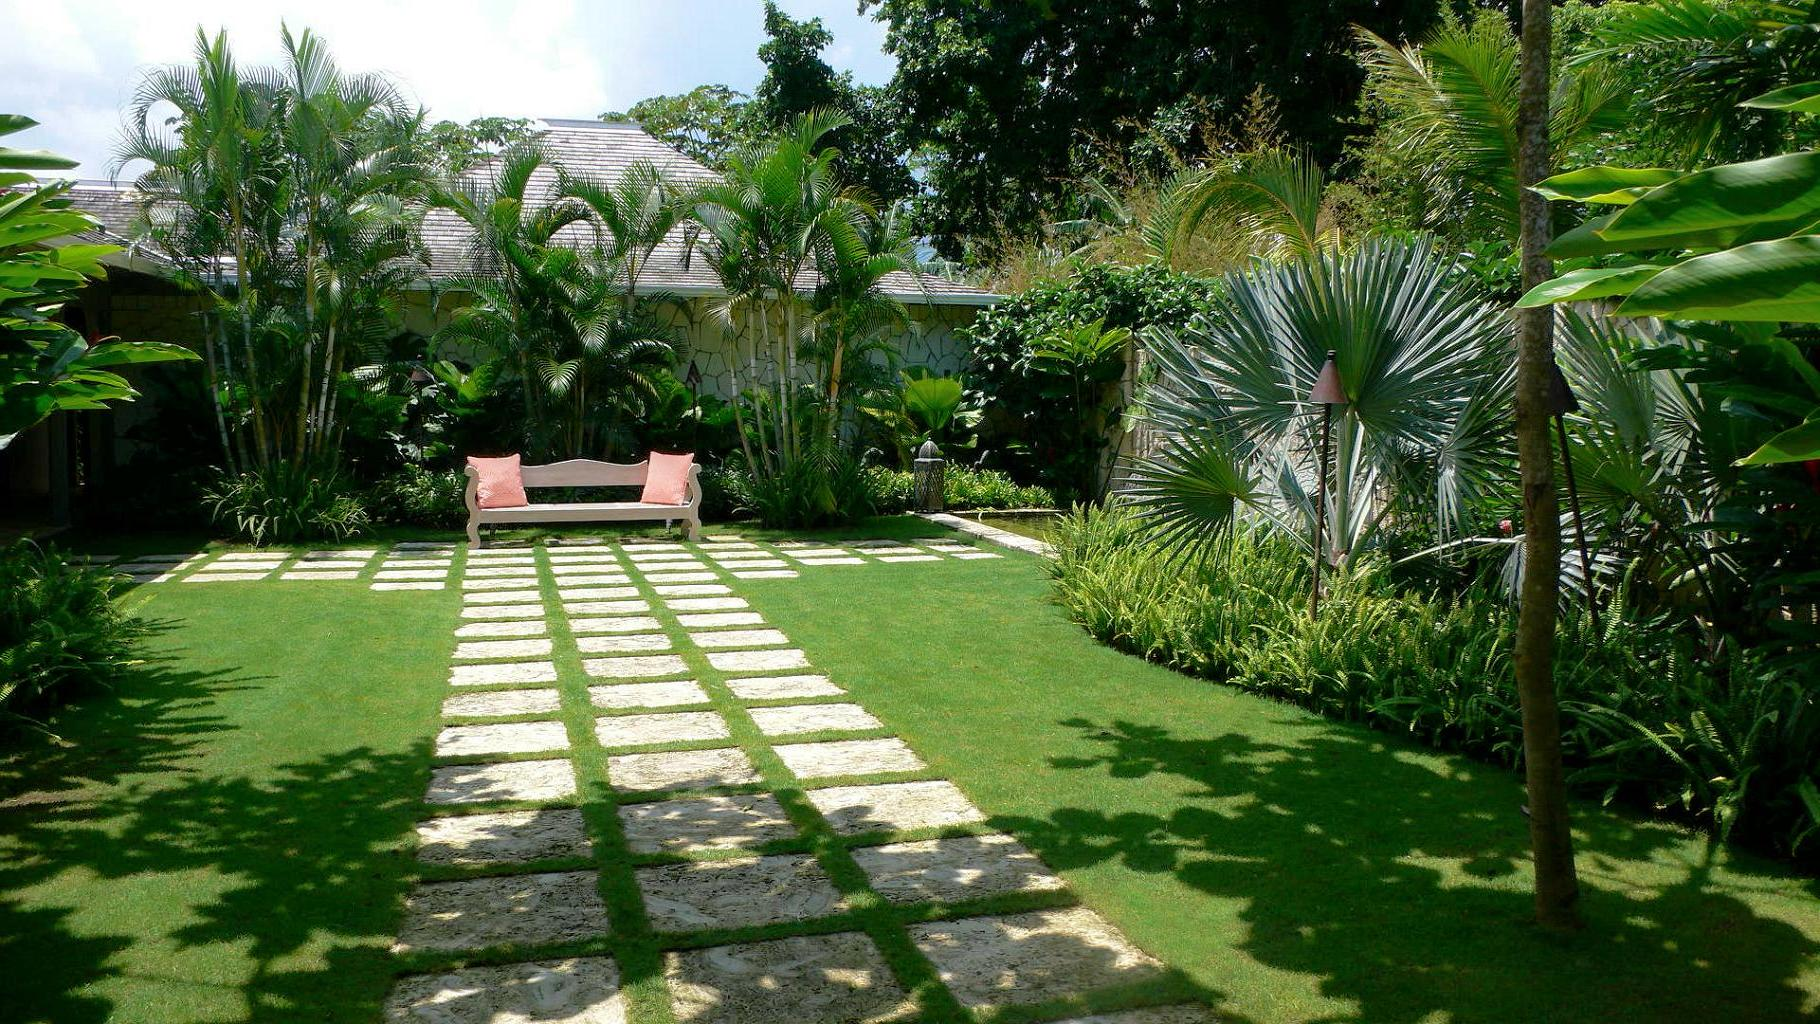 Tropical garden design landscaping in brisbane for Latest garden design